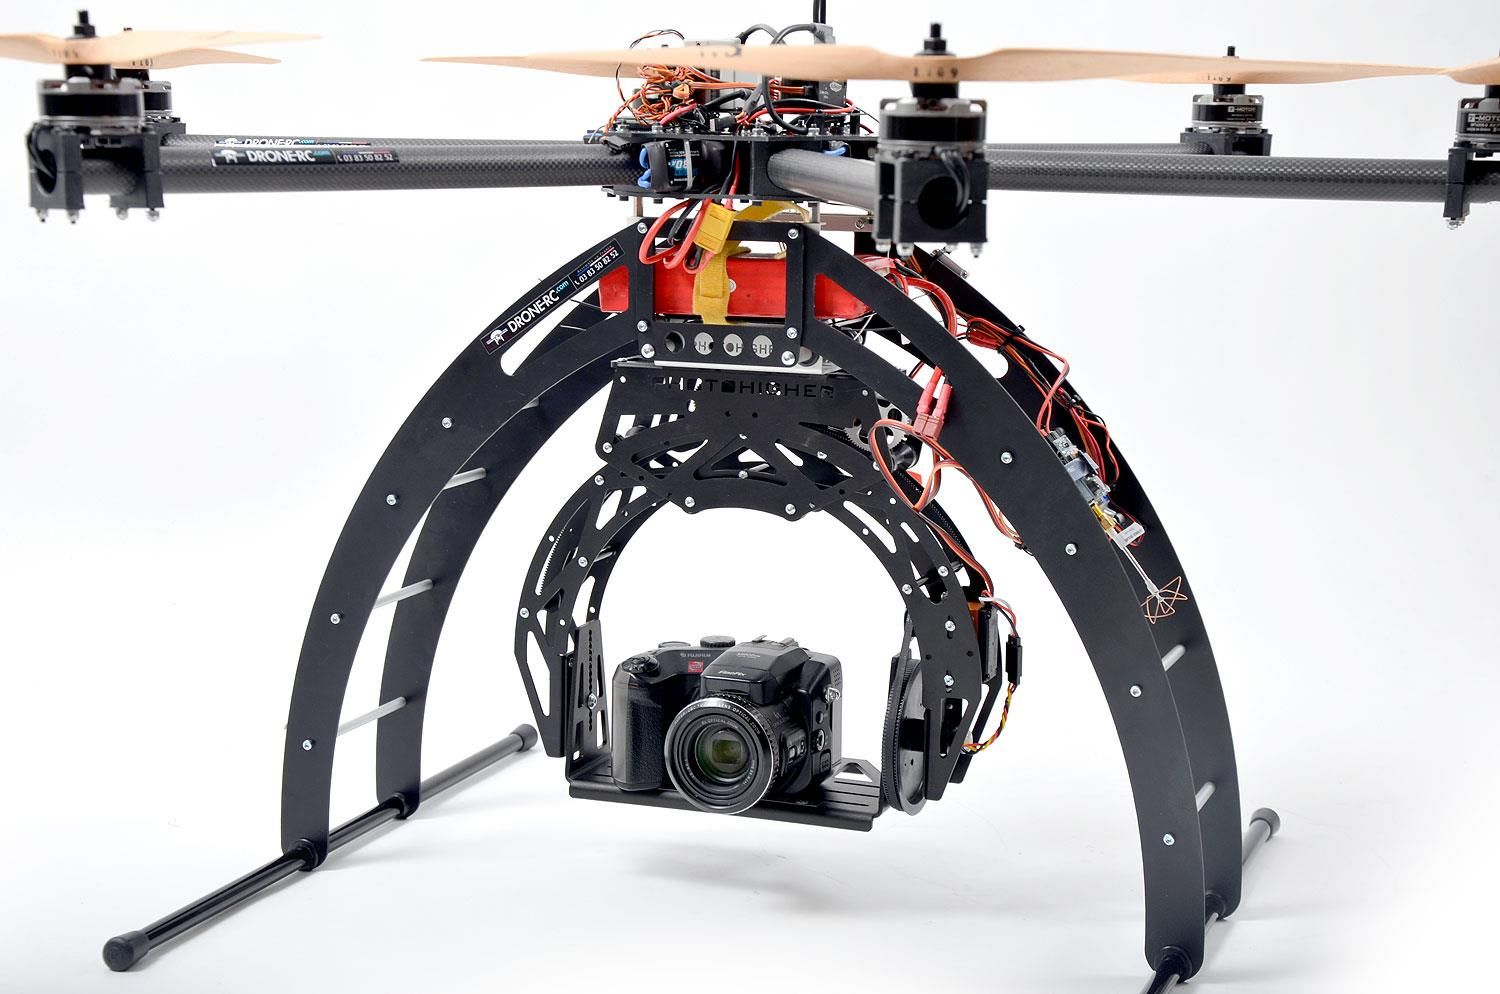 The latest UAV by Drone RC with Xoar Precision Pair http